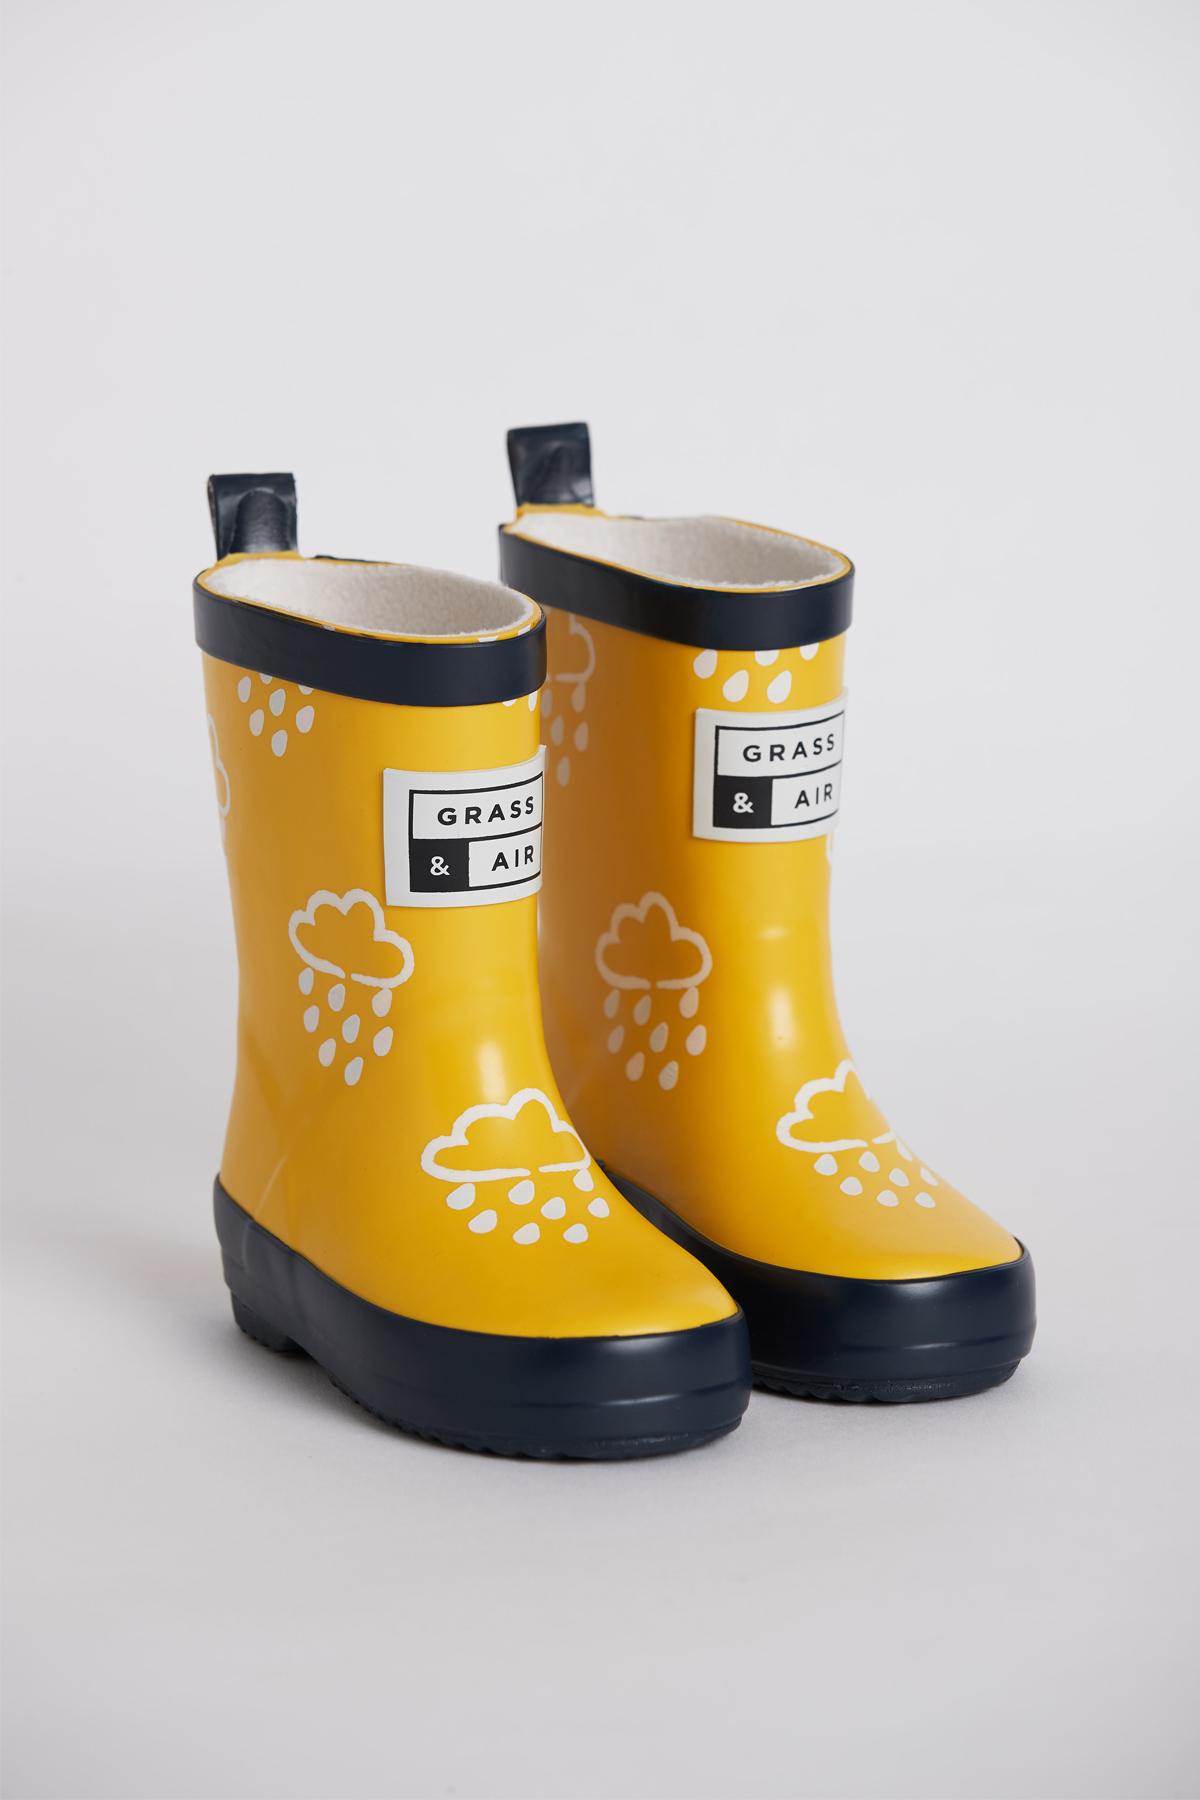 Grass & Air Colour Revealing Wellies - Yellow